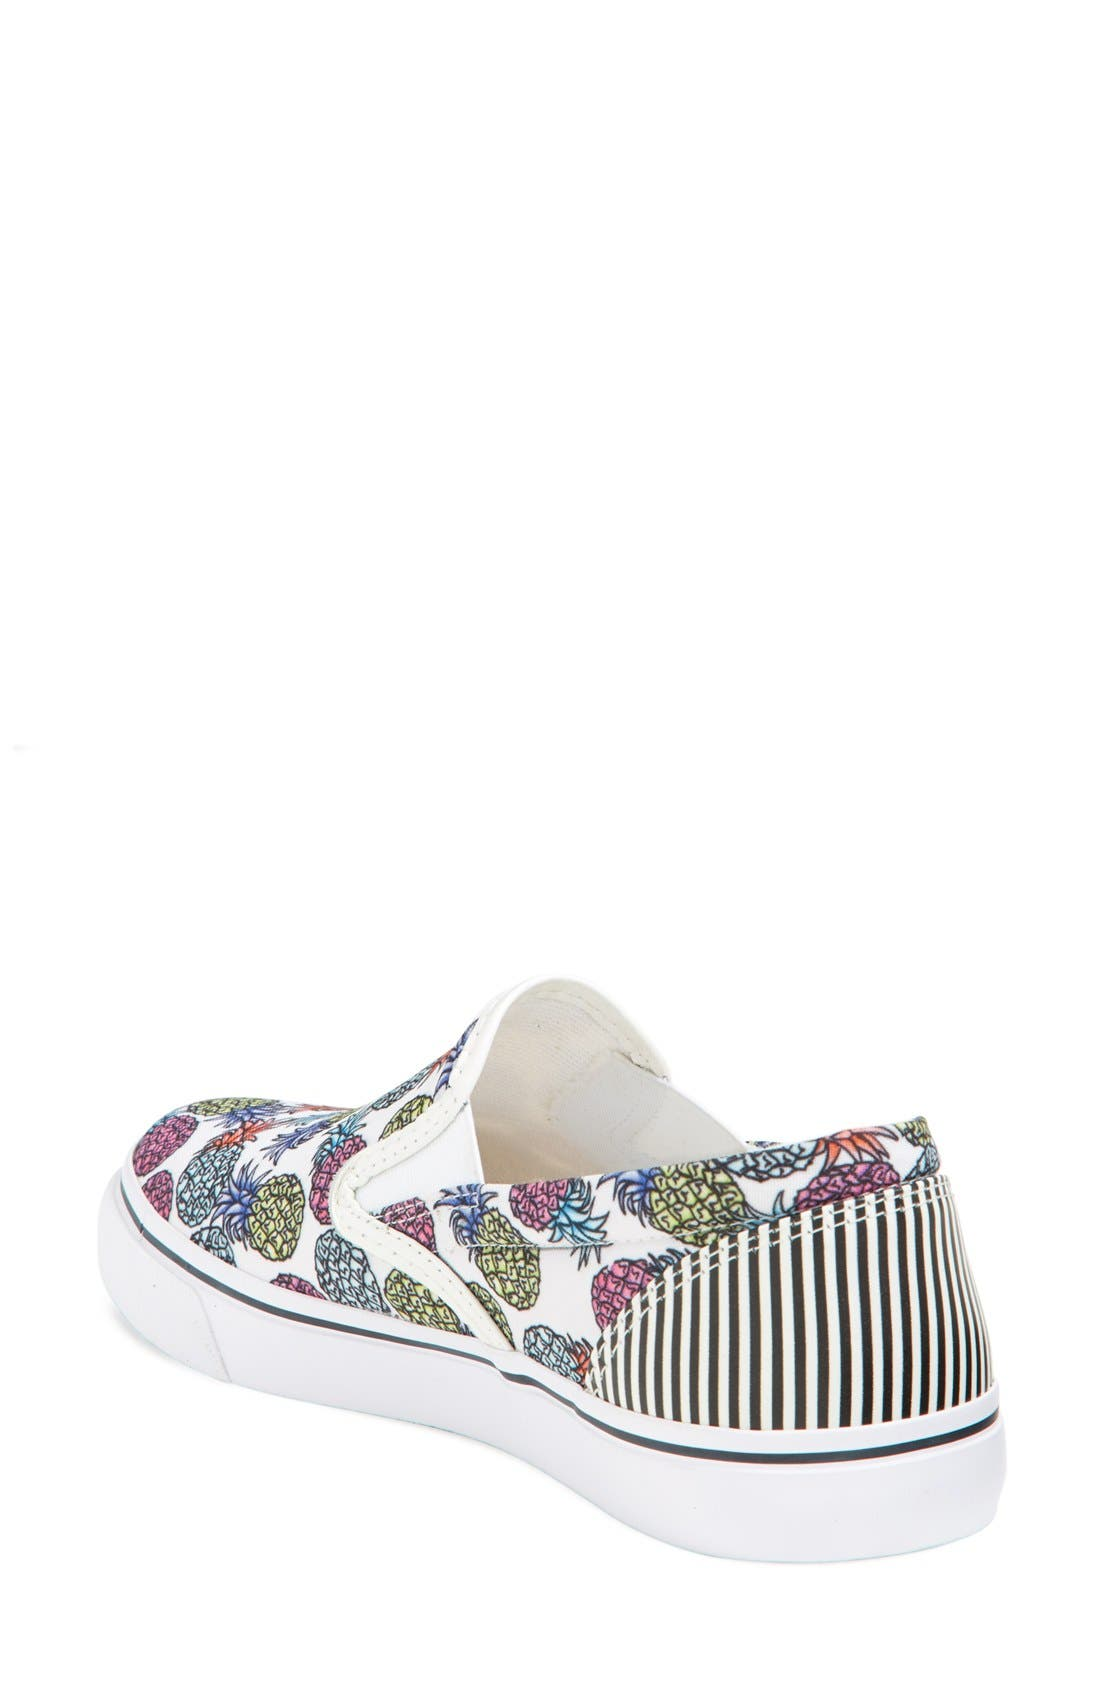 'Adele - Pineapple' Satin Slip-On Sneaker,                             Alternate thumbnail 2, color,                             Pineapple White